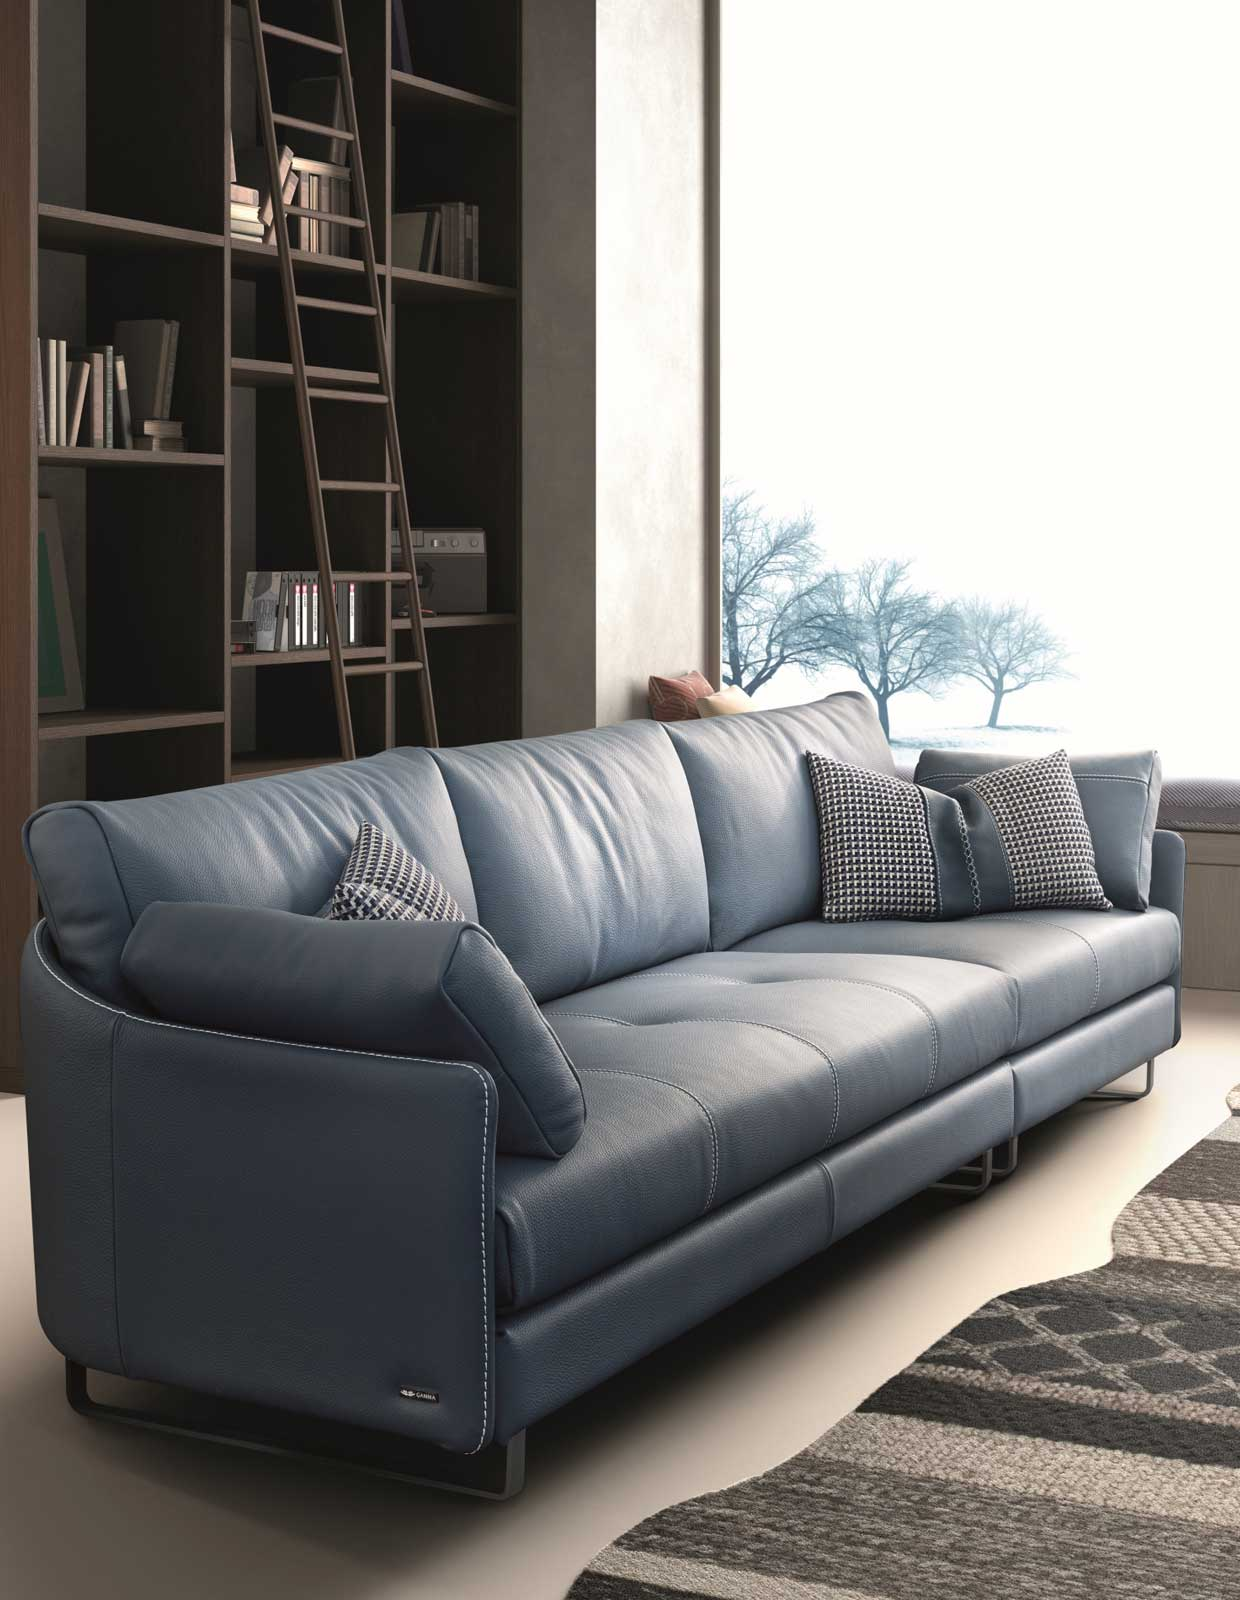 gamma sofas leather sofa and fabric chairs more ways to shop featured brands page 1 cantoni gamma3 jpg